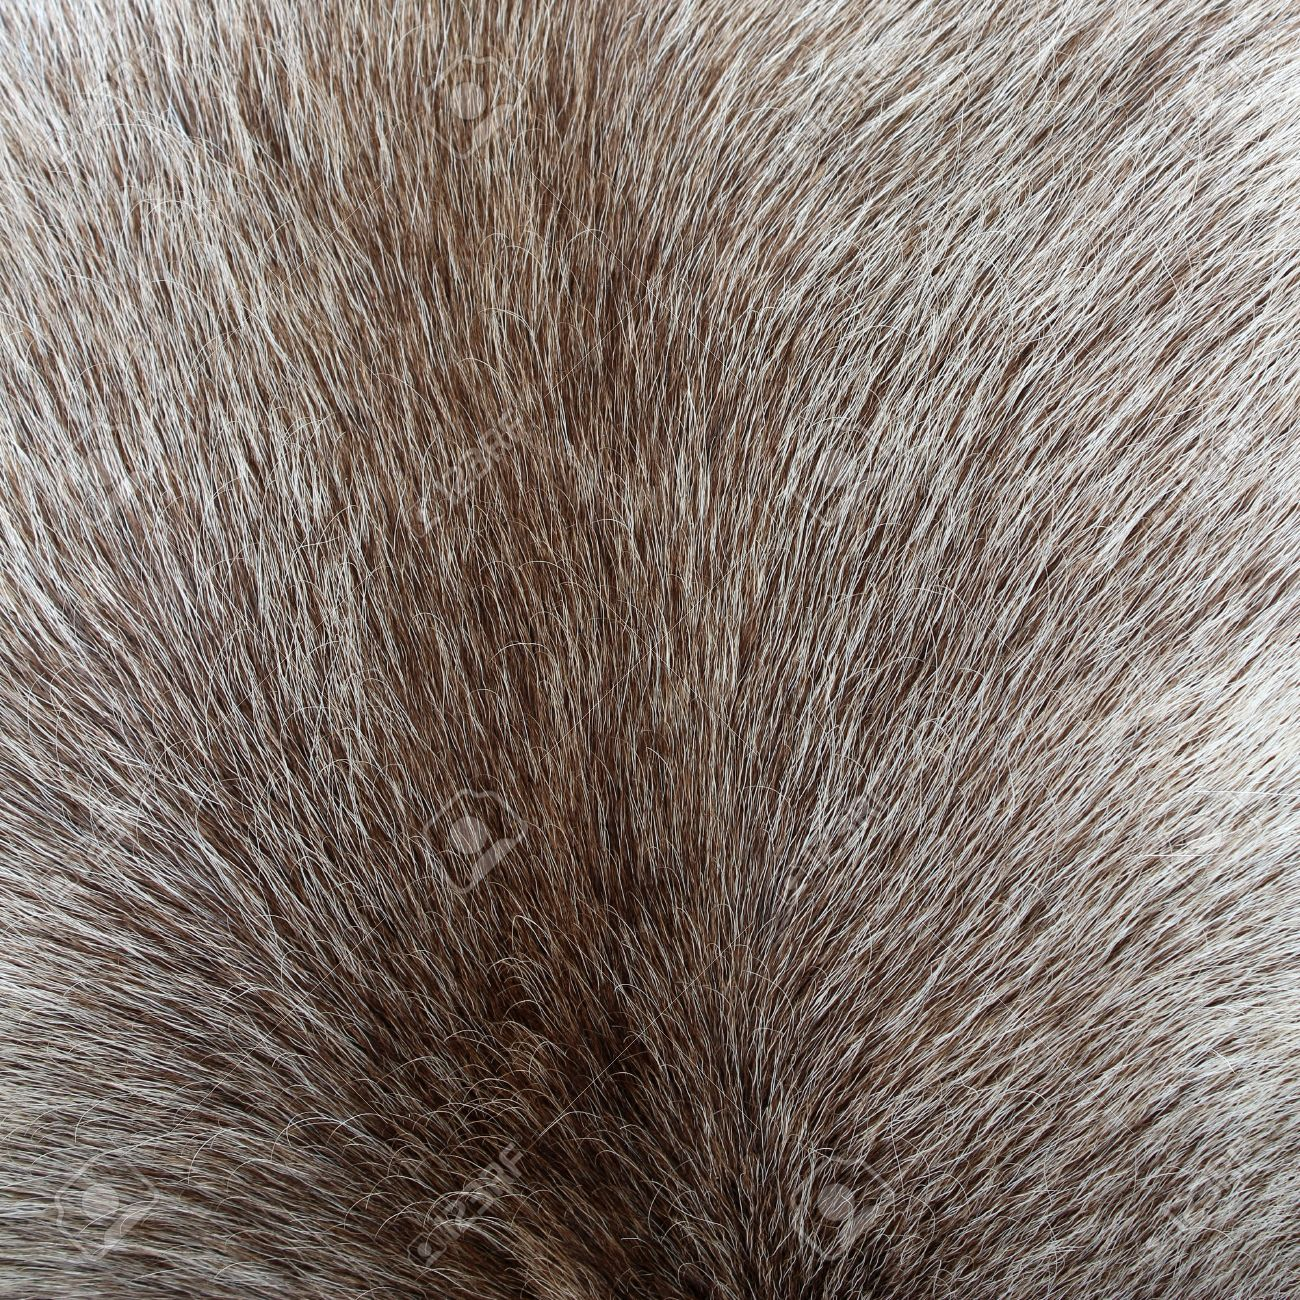 21219764-Close-up-of-reindeer-colored-fur-texture-Stock-Photo.jpg